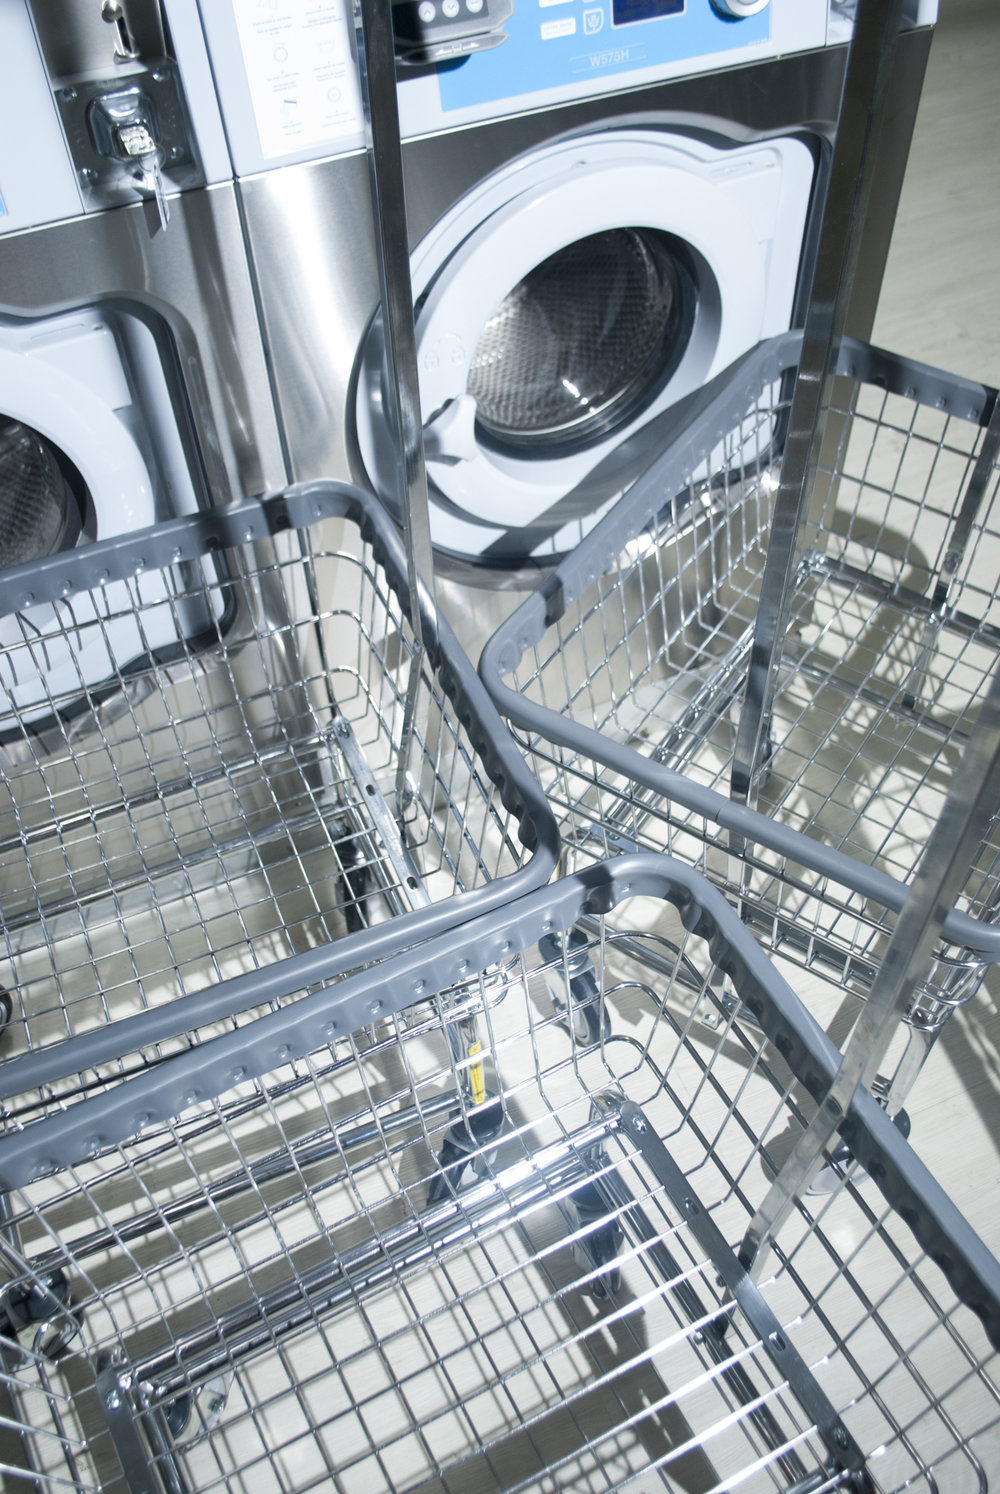 The laundromat space comes with various soaps, dolly carts, and tables to properly clean your clothing.